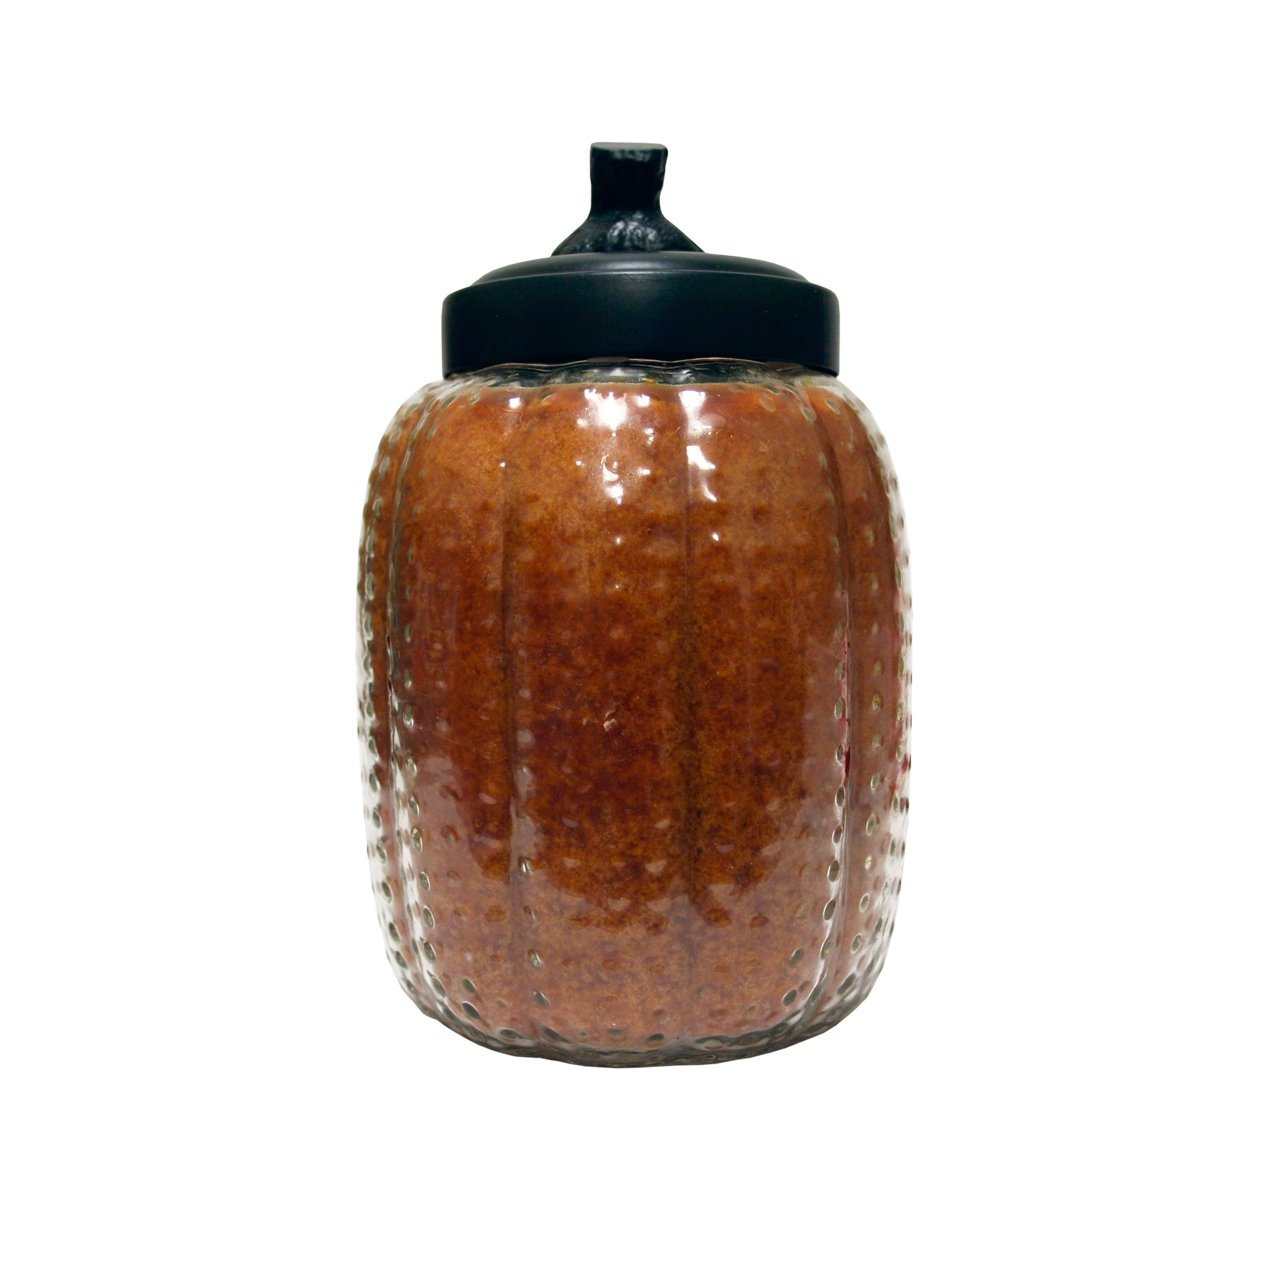 A Cheerful Giver Autumn Orchards Pumpkin Jar Candle, 26-Ounce JPUM-65